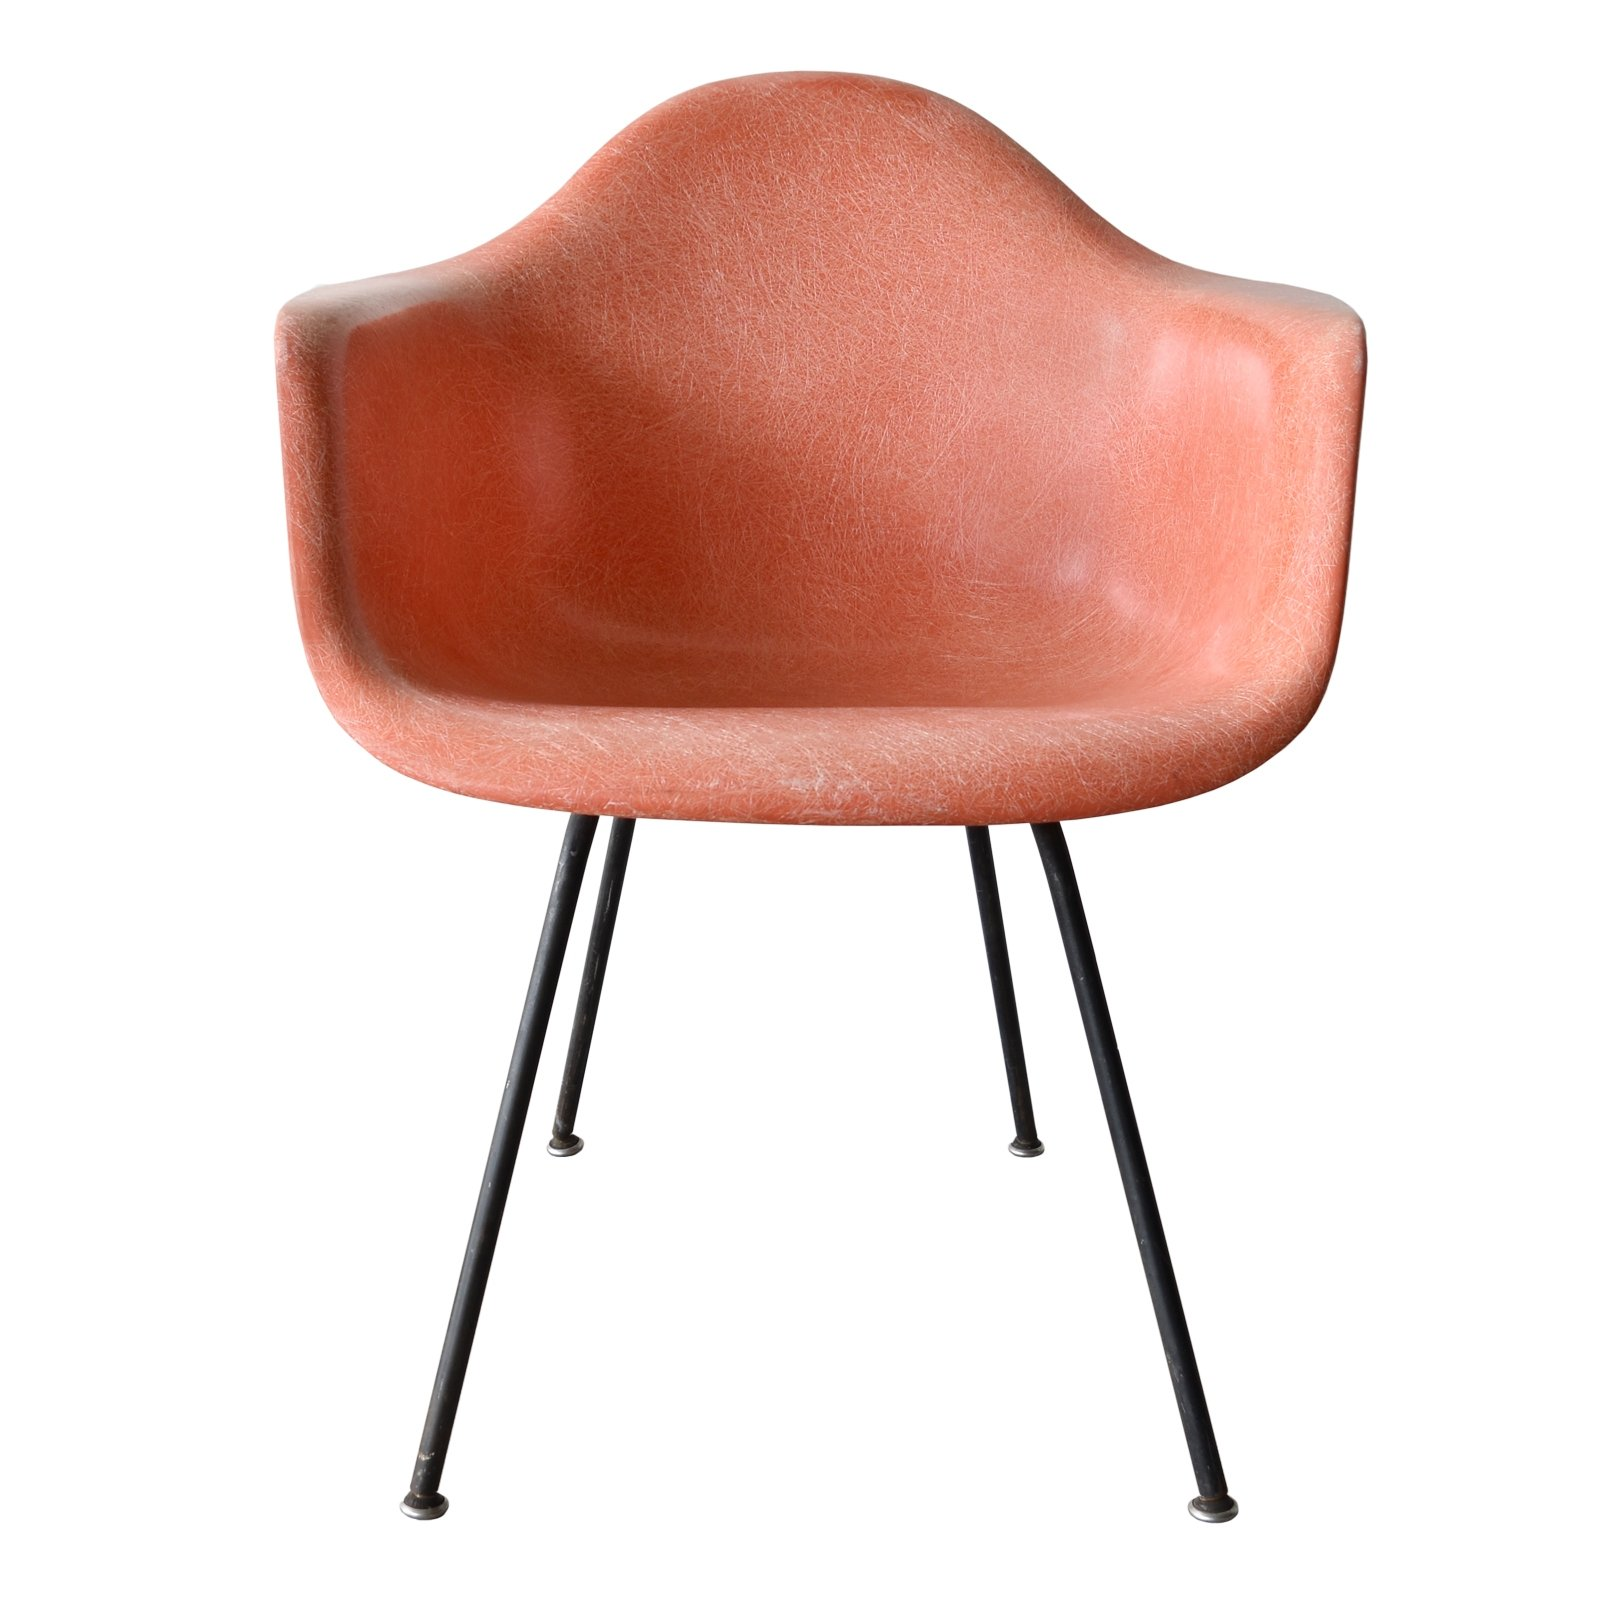 Dax salmon arm chair by charles ray eames for herman miller 1950s 5 - Eames chair herman miller ...